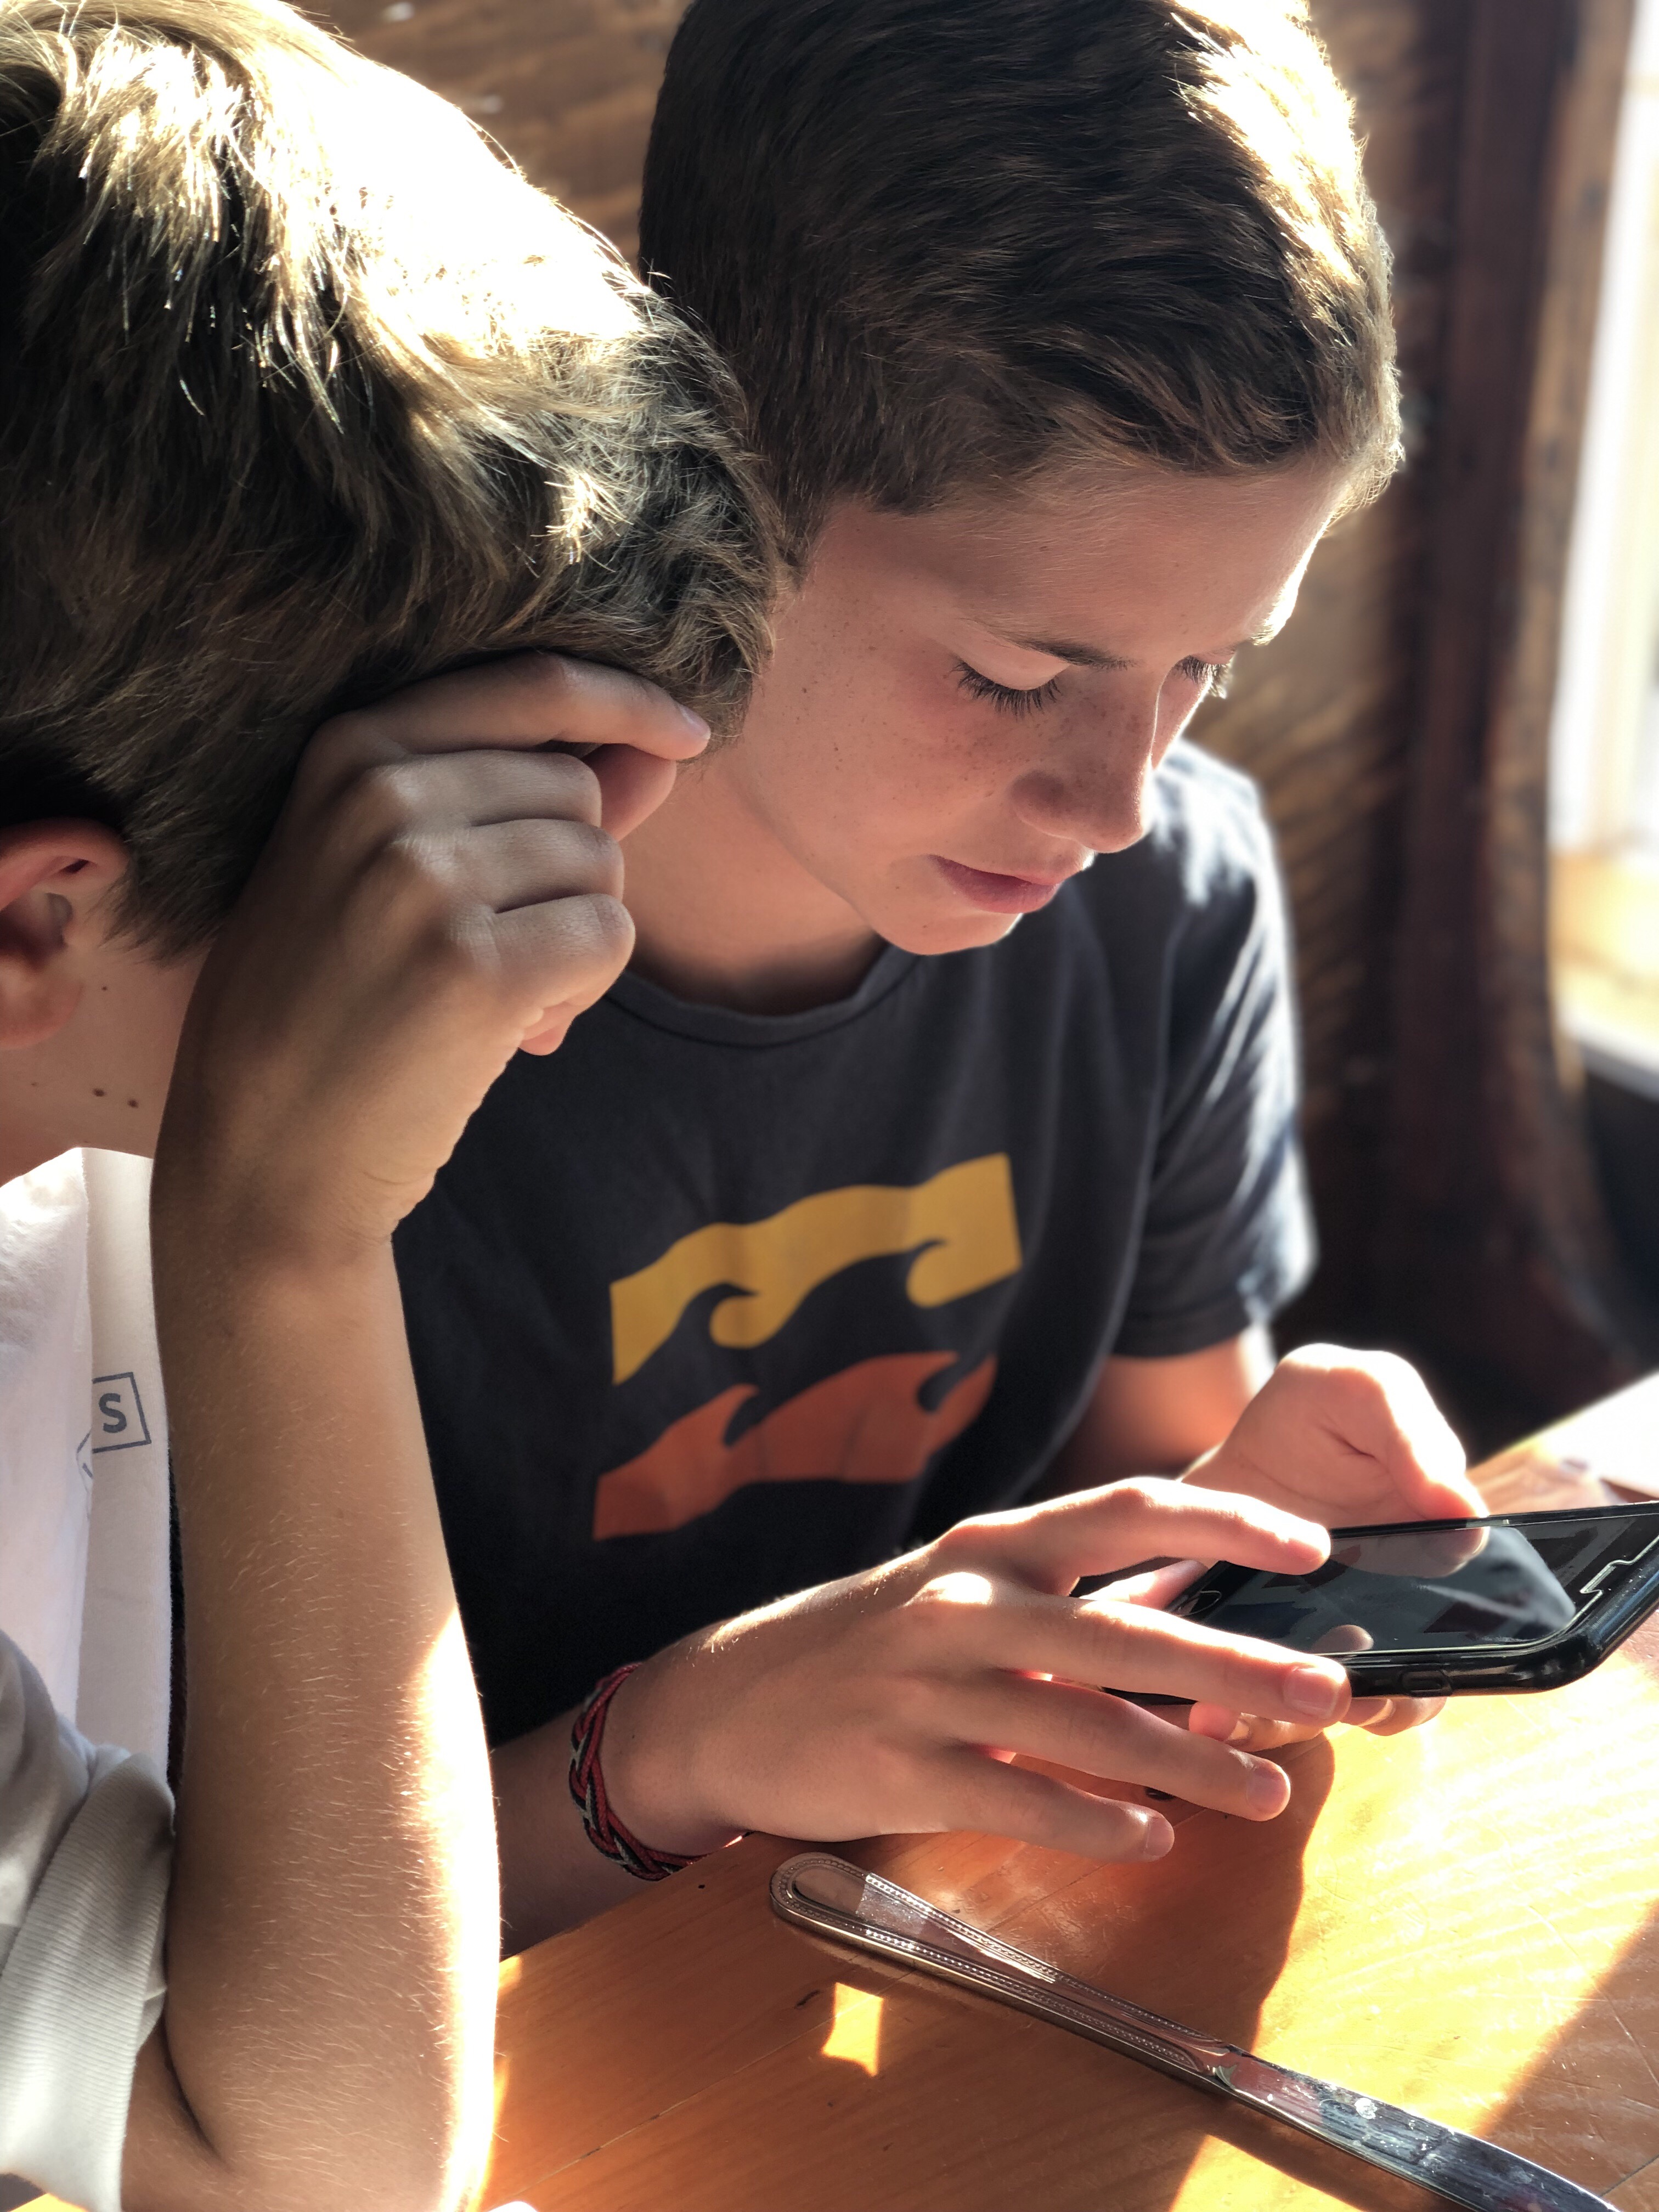 Two tween boys looking at a cell phone